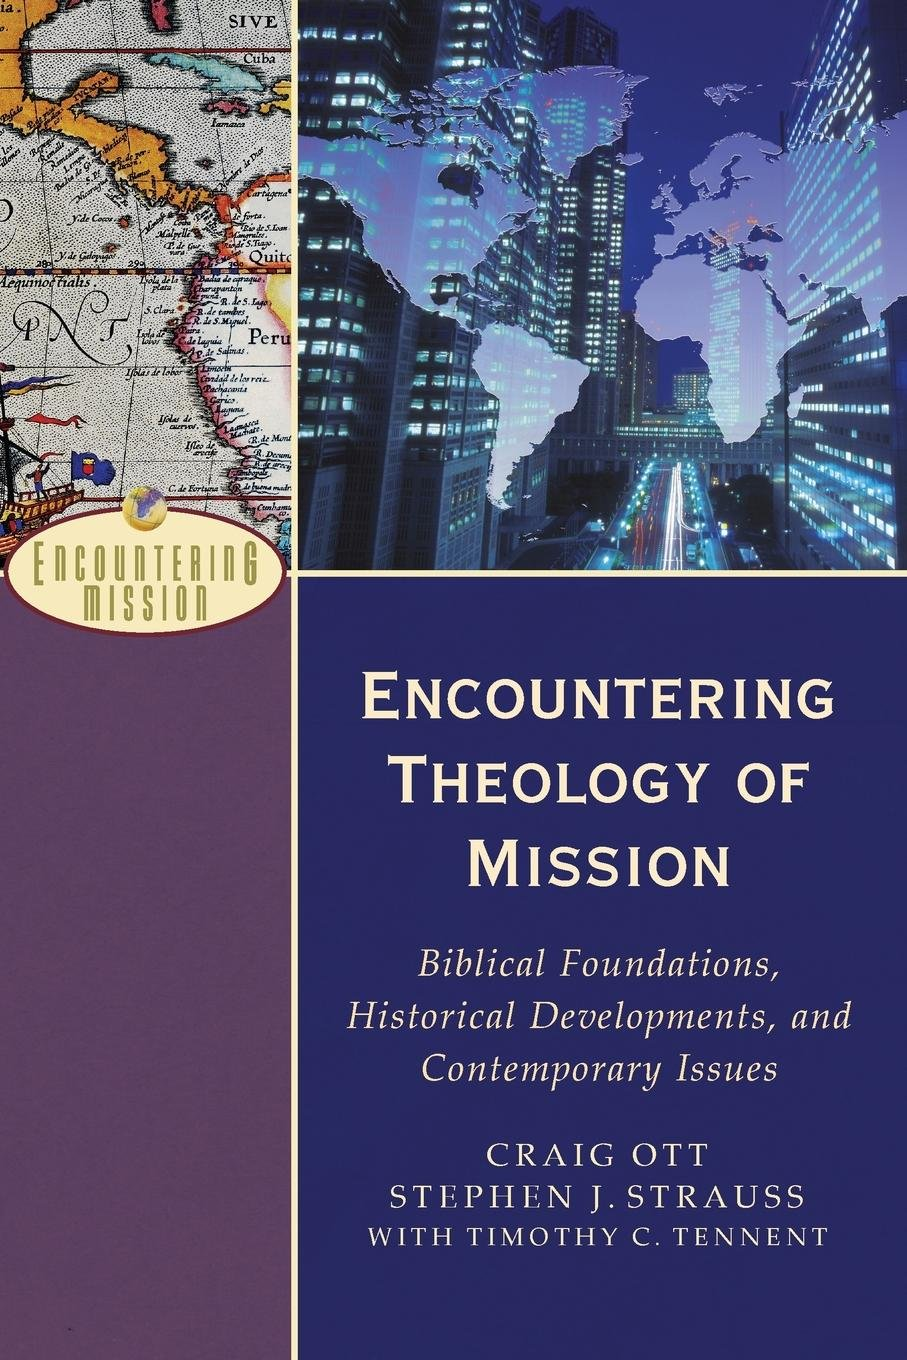 Read Online Encountering Theology of Mission: Biblical Foundations, Historical Developments, and Contemporary Issues (Encountering Mission) PDF